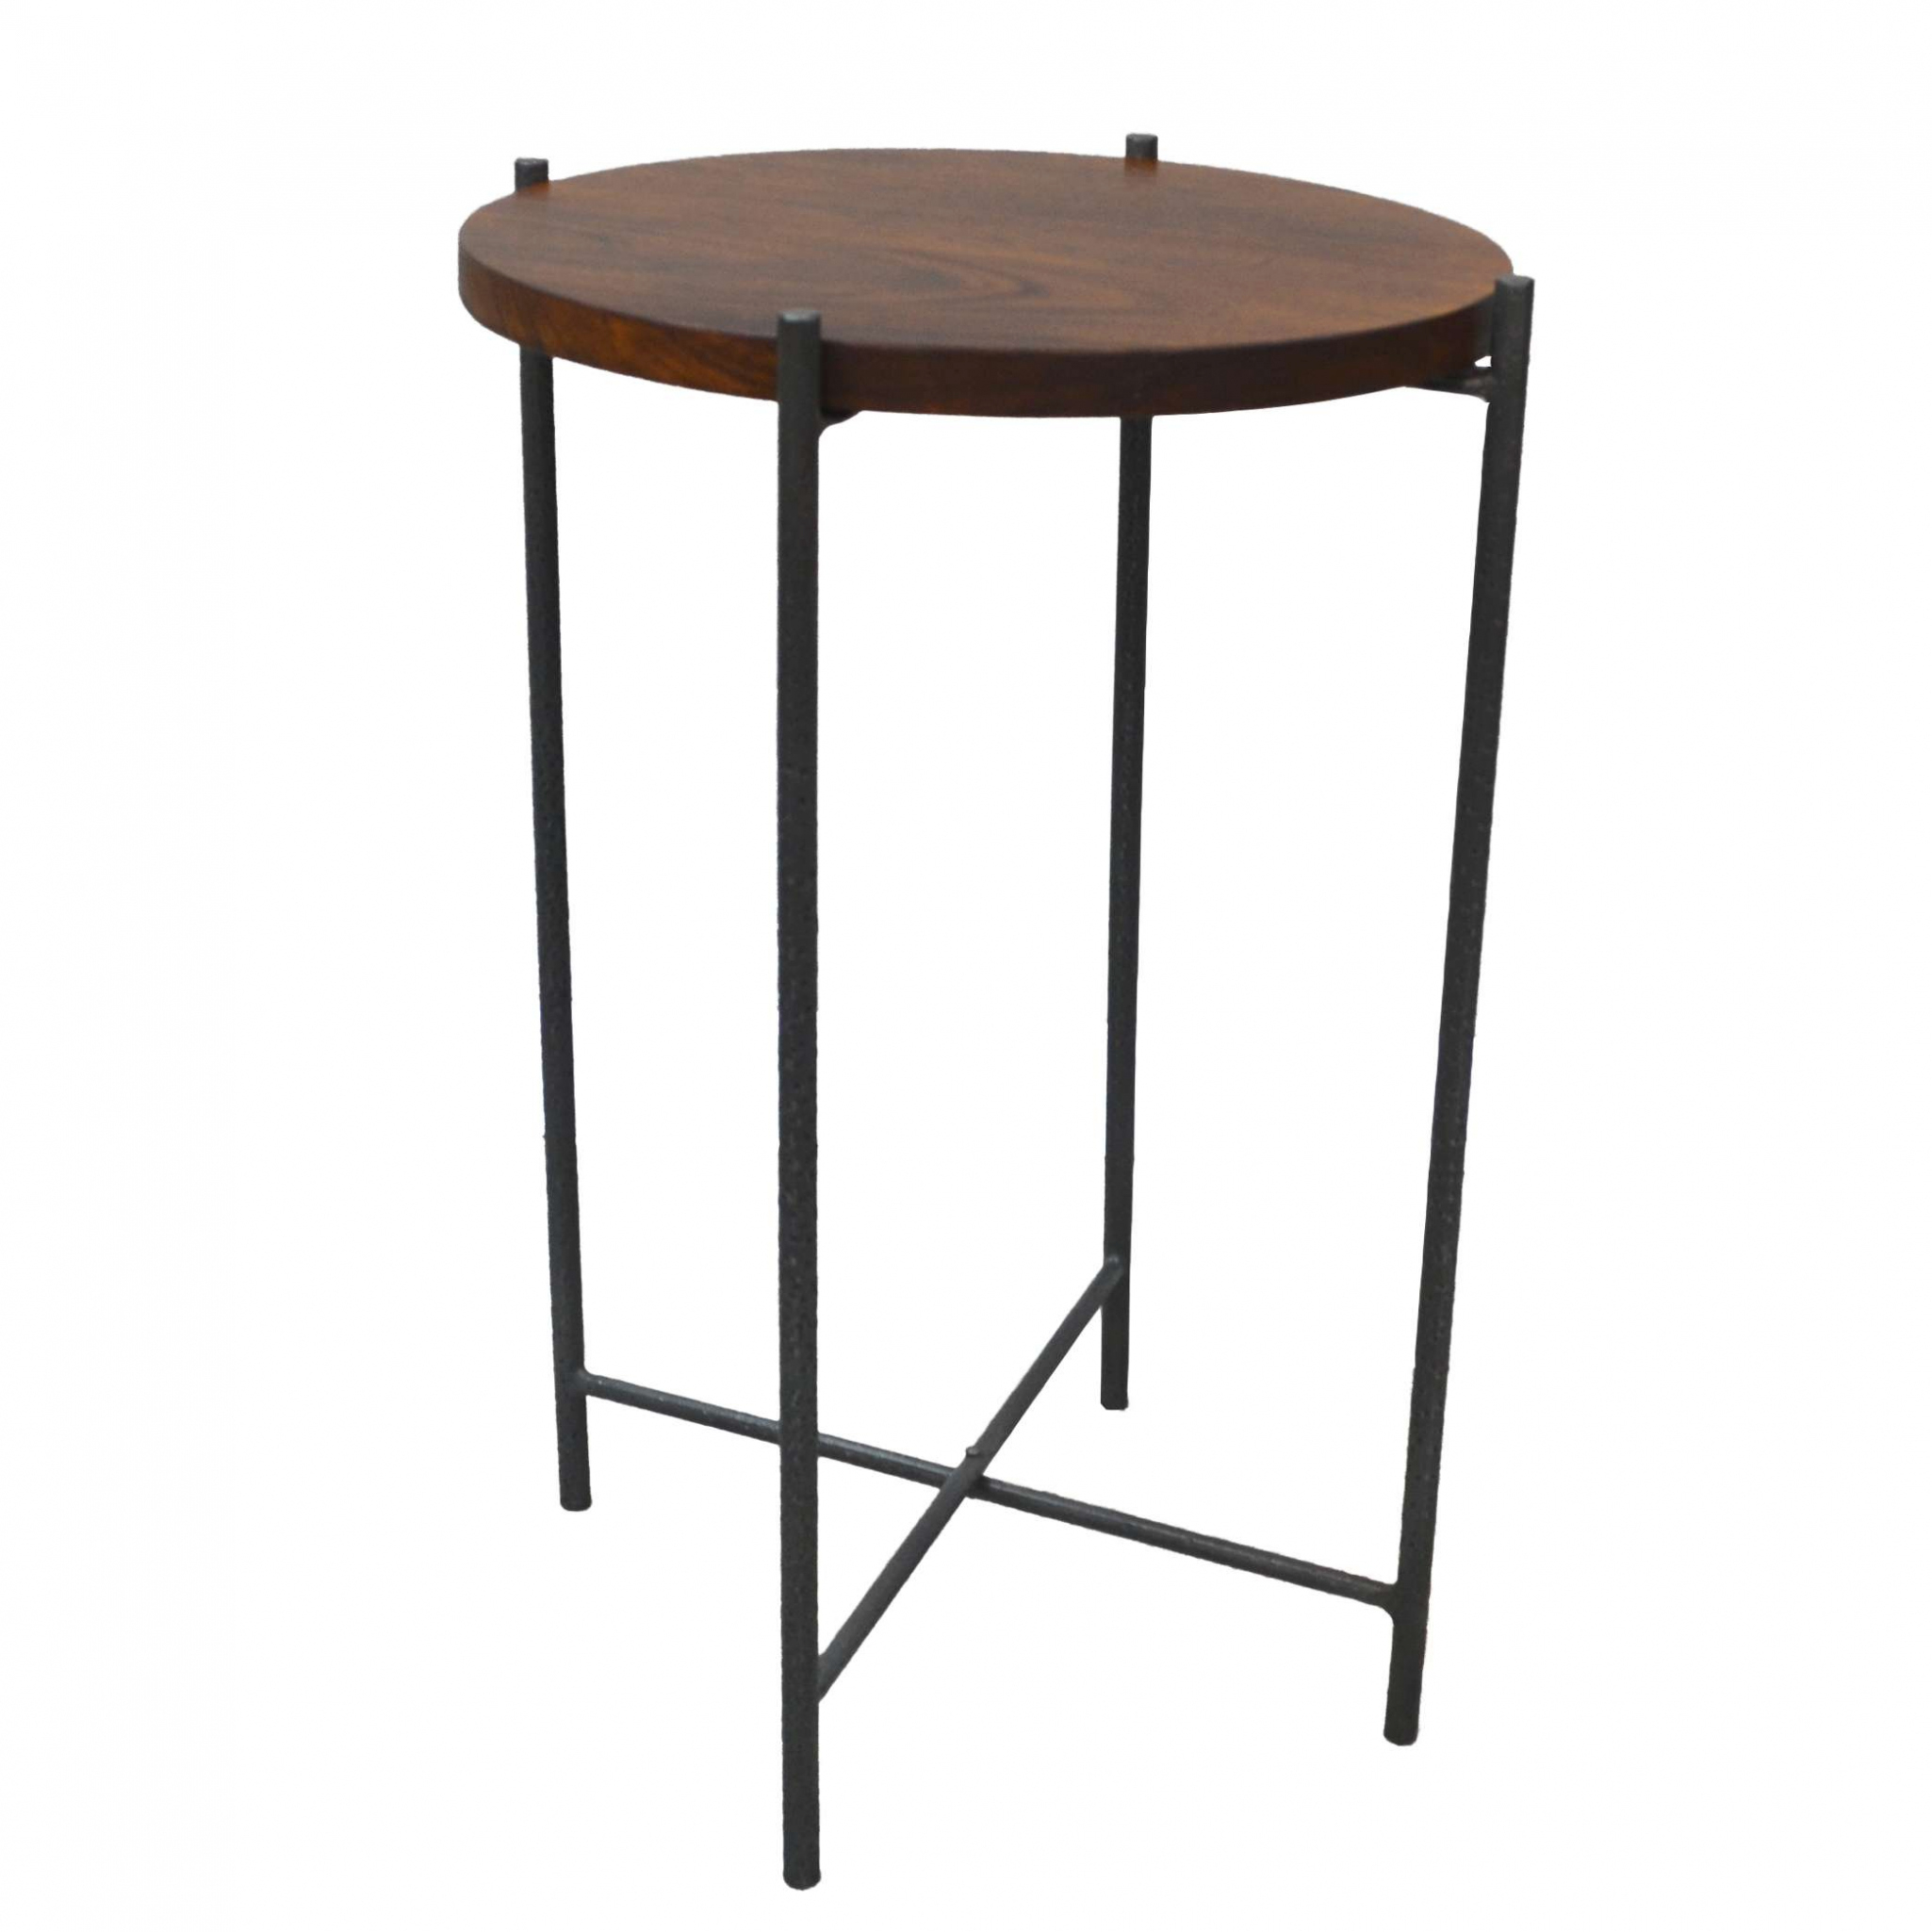 furniture carolina chair table chaz chestnut round accent with metal regard and wood high end pool bunnings iron umbrella stand legs for pedestal bronze spray paint reclaimed